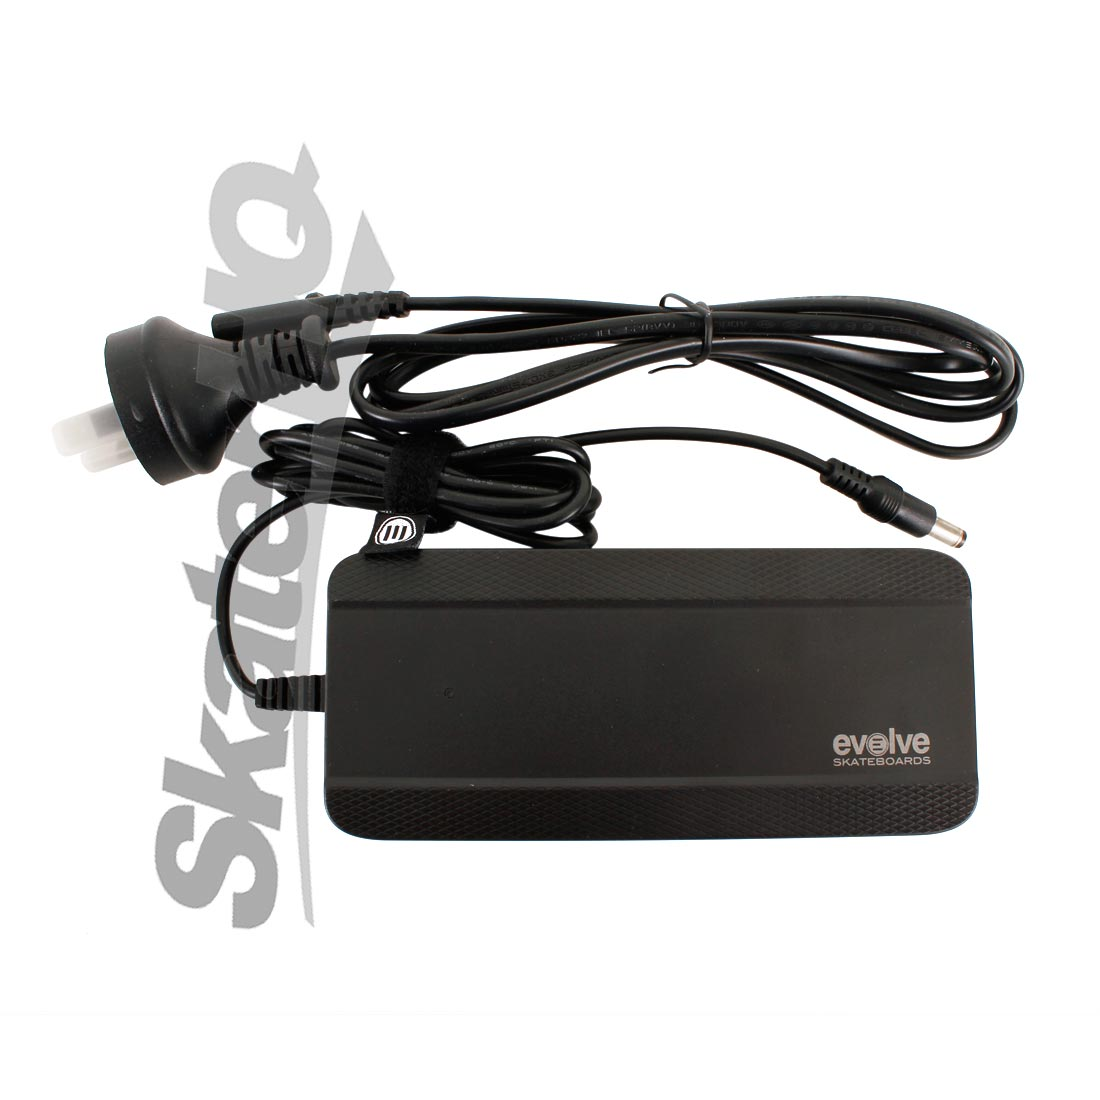 Evolve 2A Battery Charger - Black